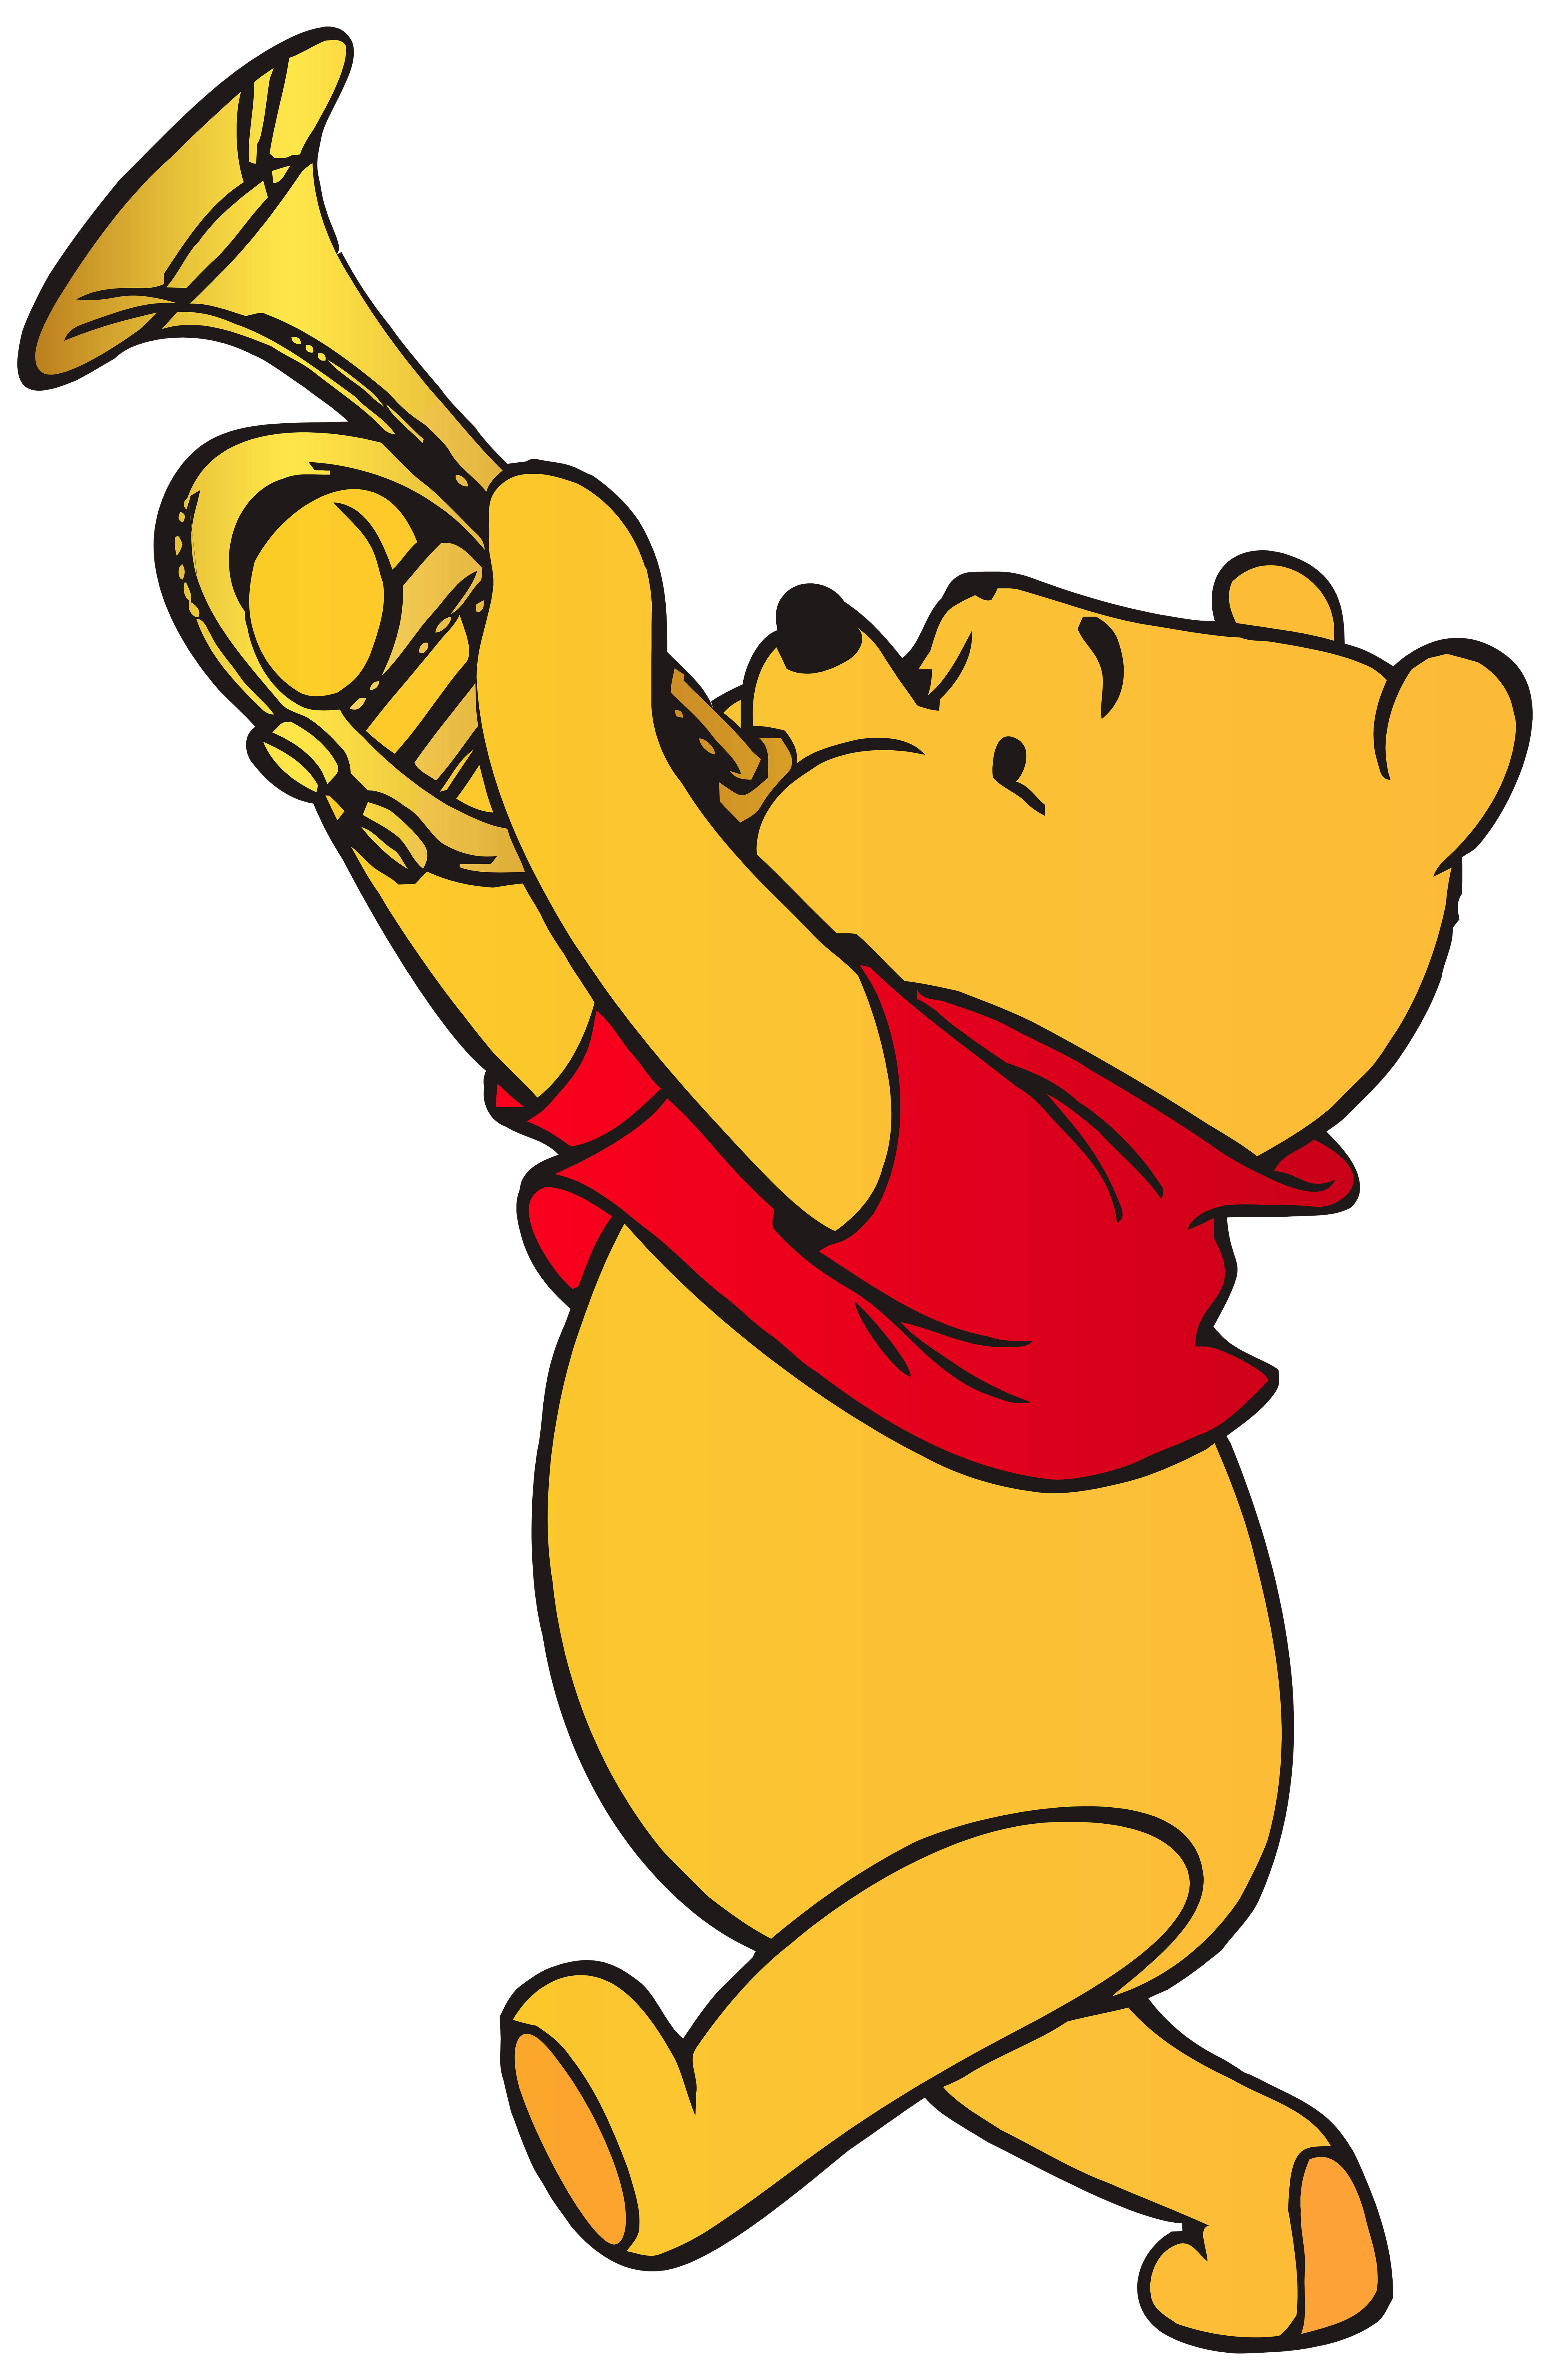 Winnie The Pooh PNG Image